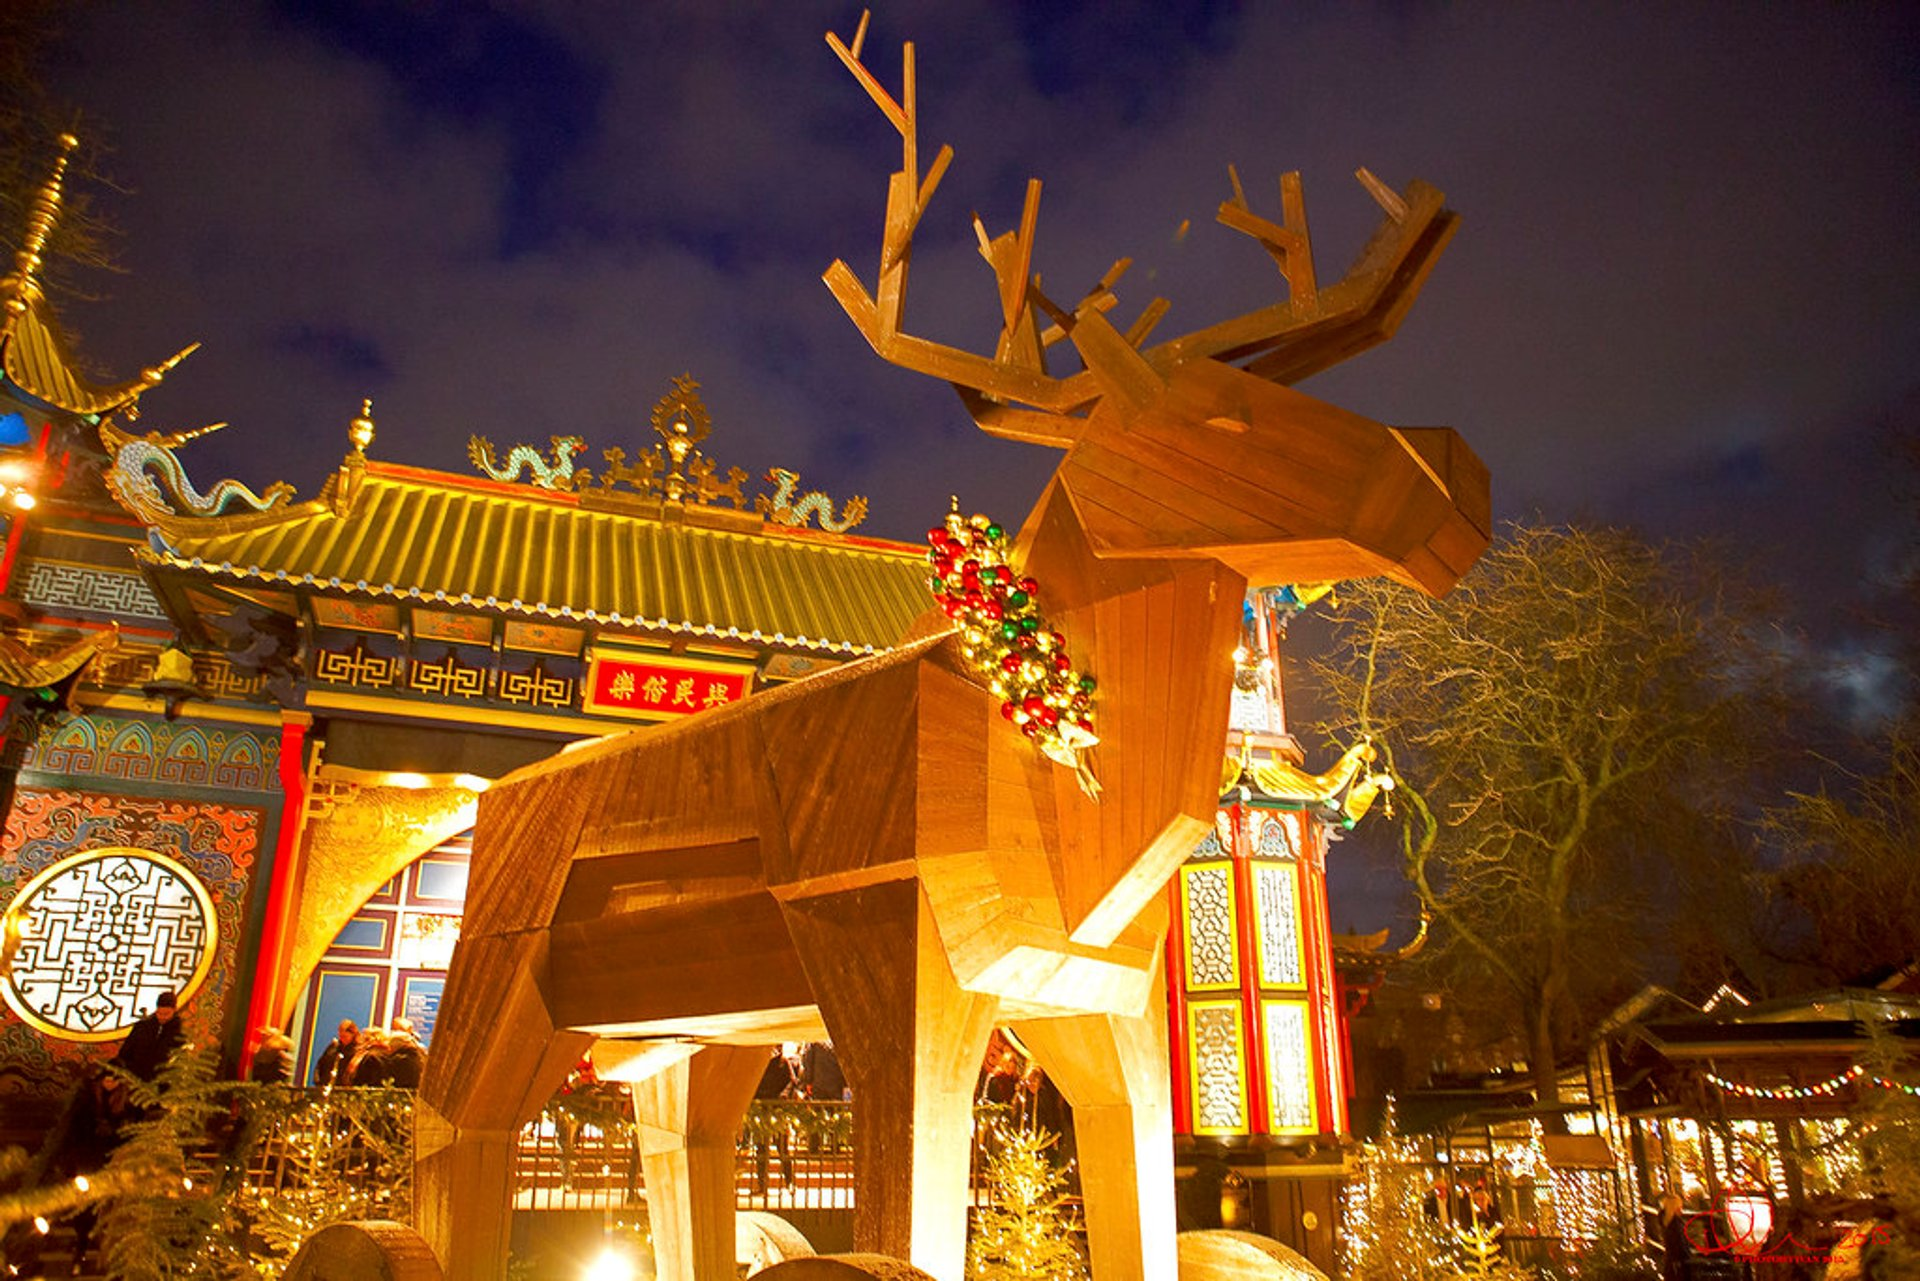 Trojan reindeer in the Tivoli Gardens 2020